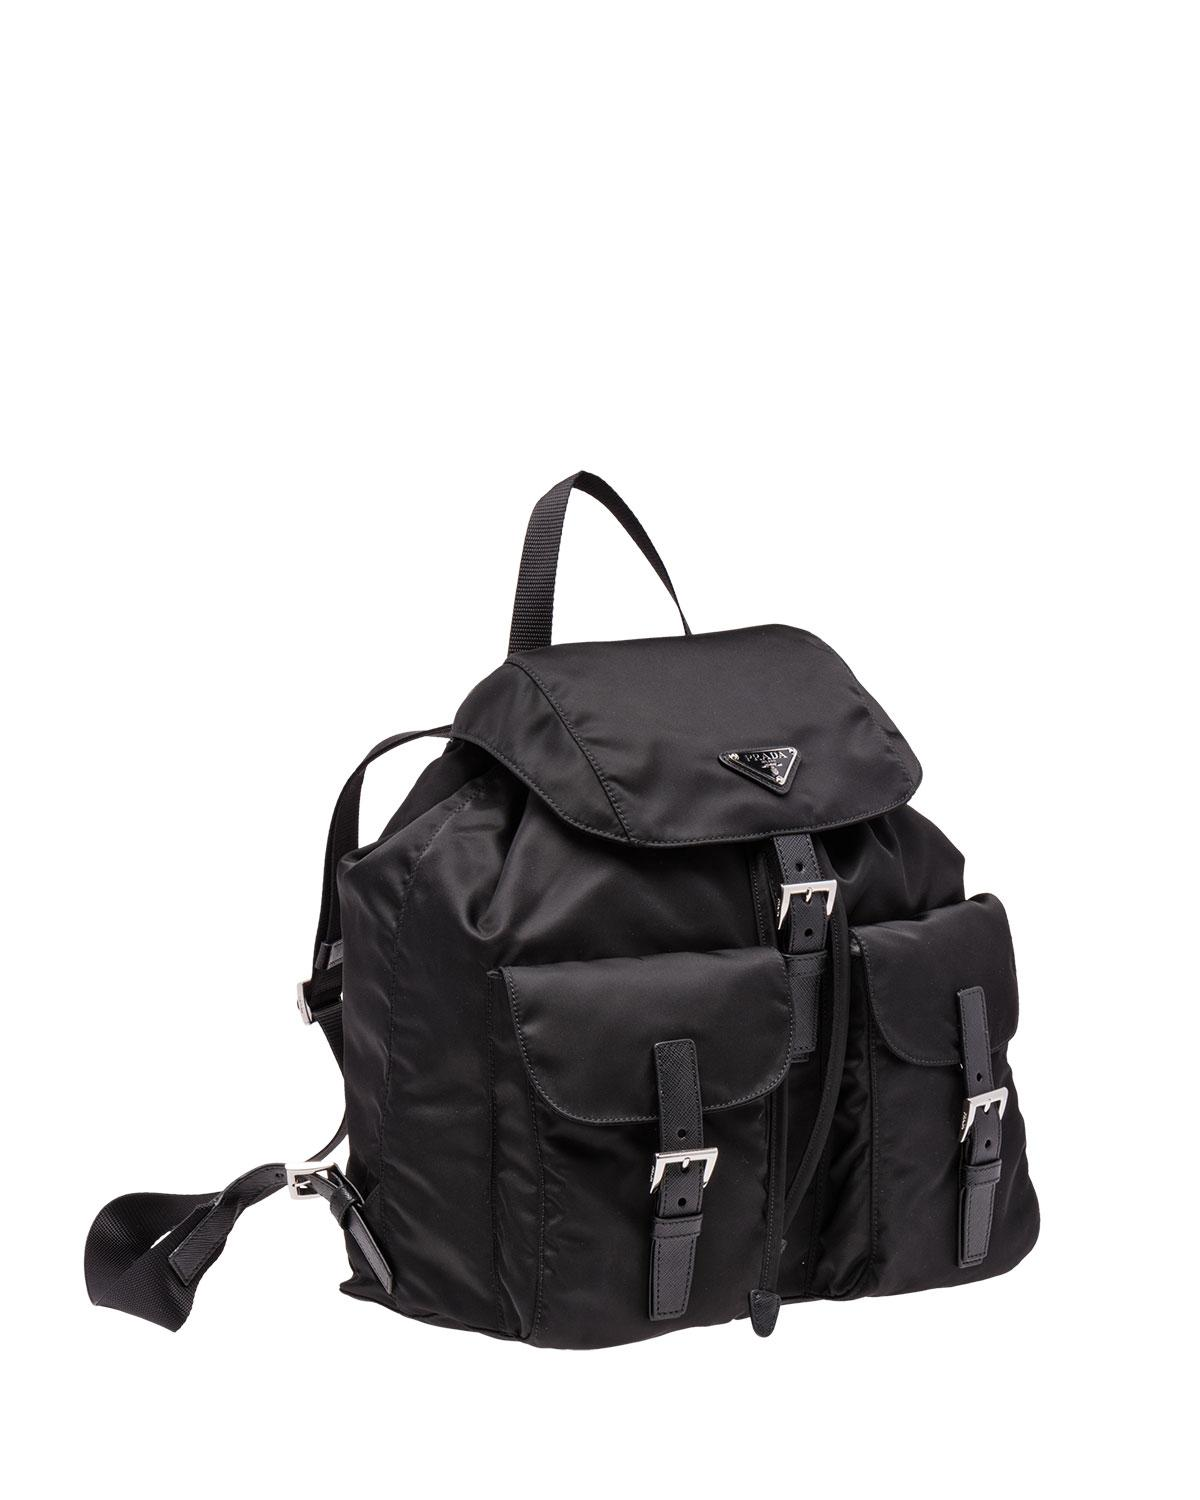 382ef2ae2dcf ... 50% off lyst prada vela large two pocket backpack in black for men  fde30 2889a